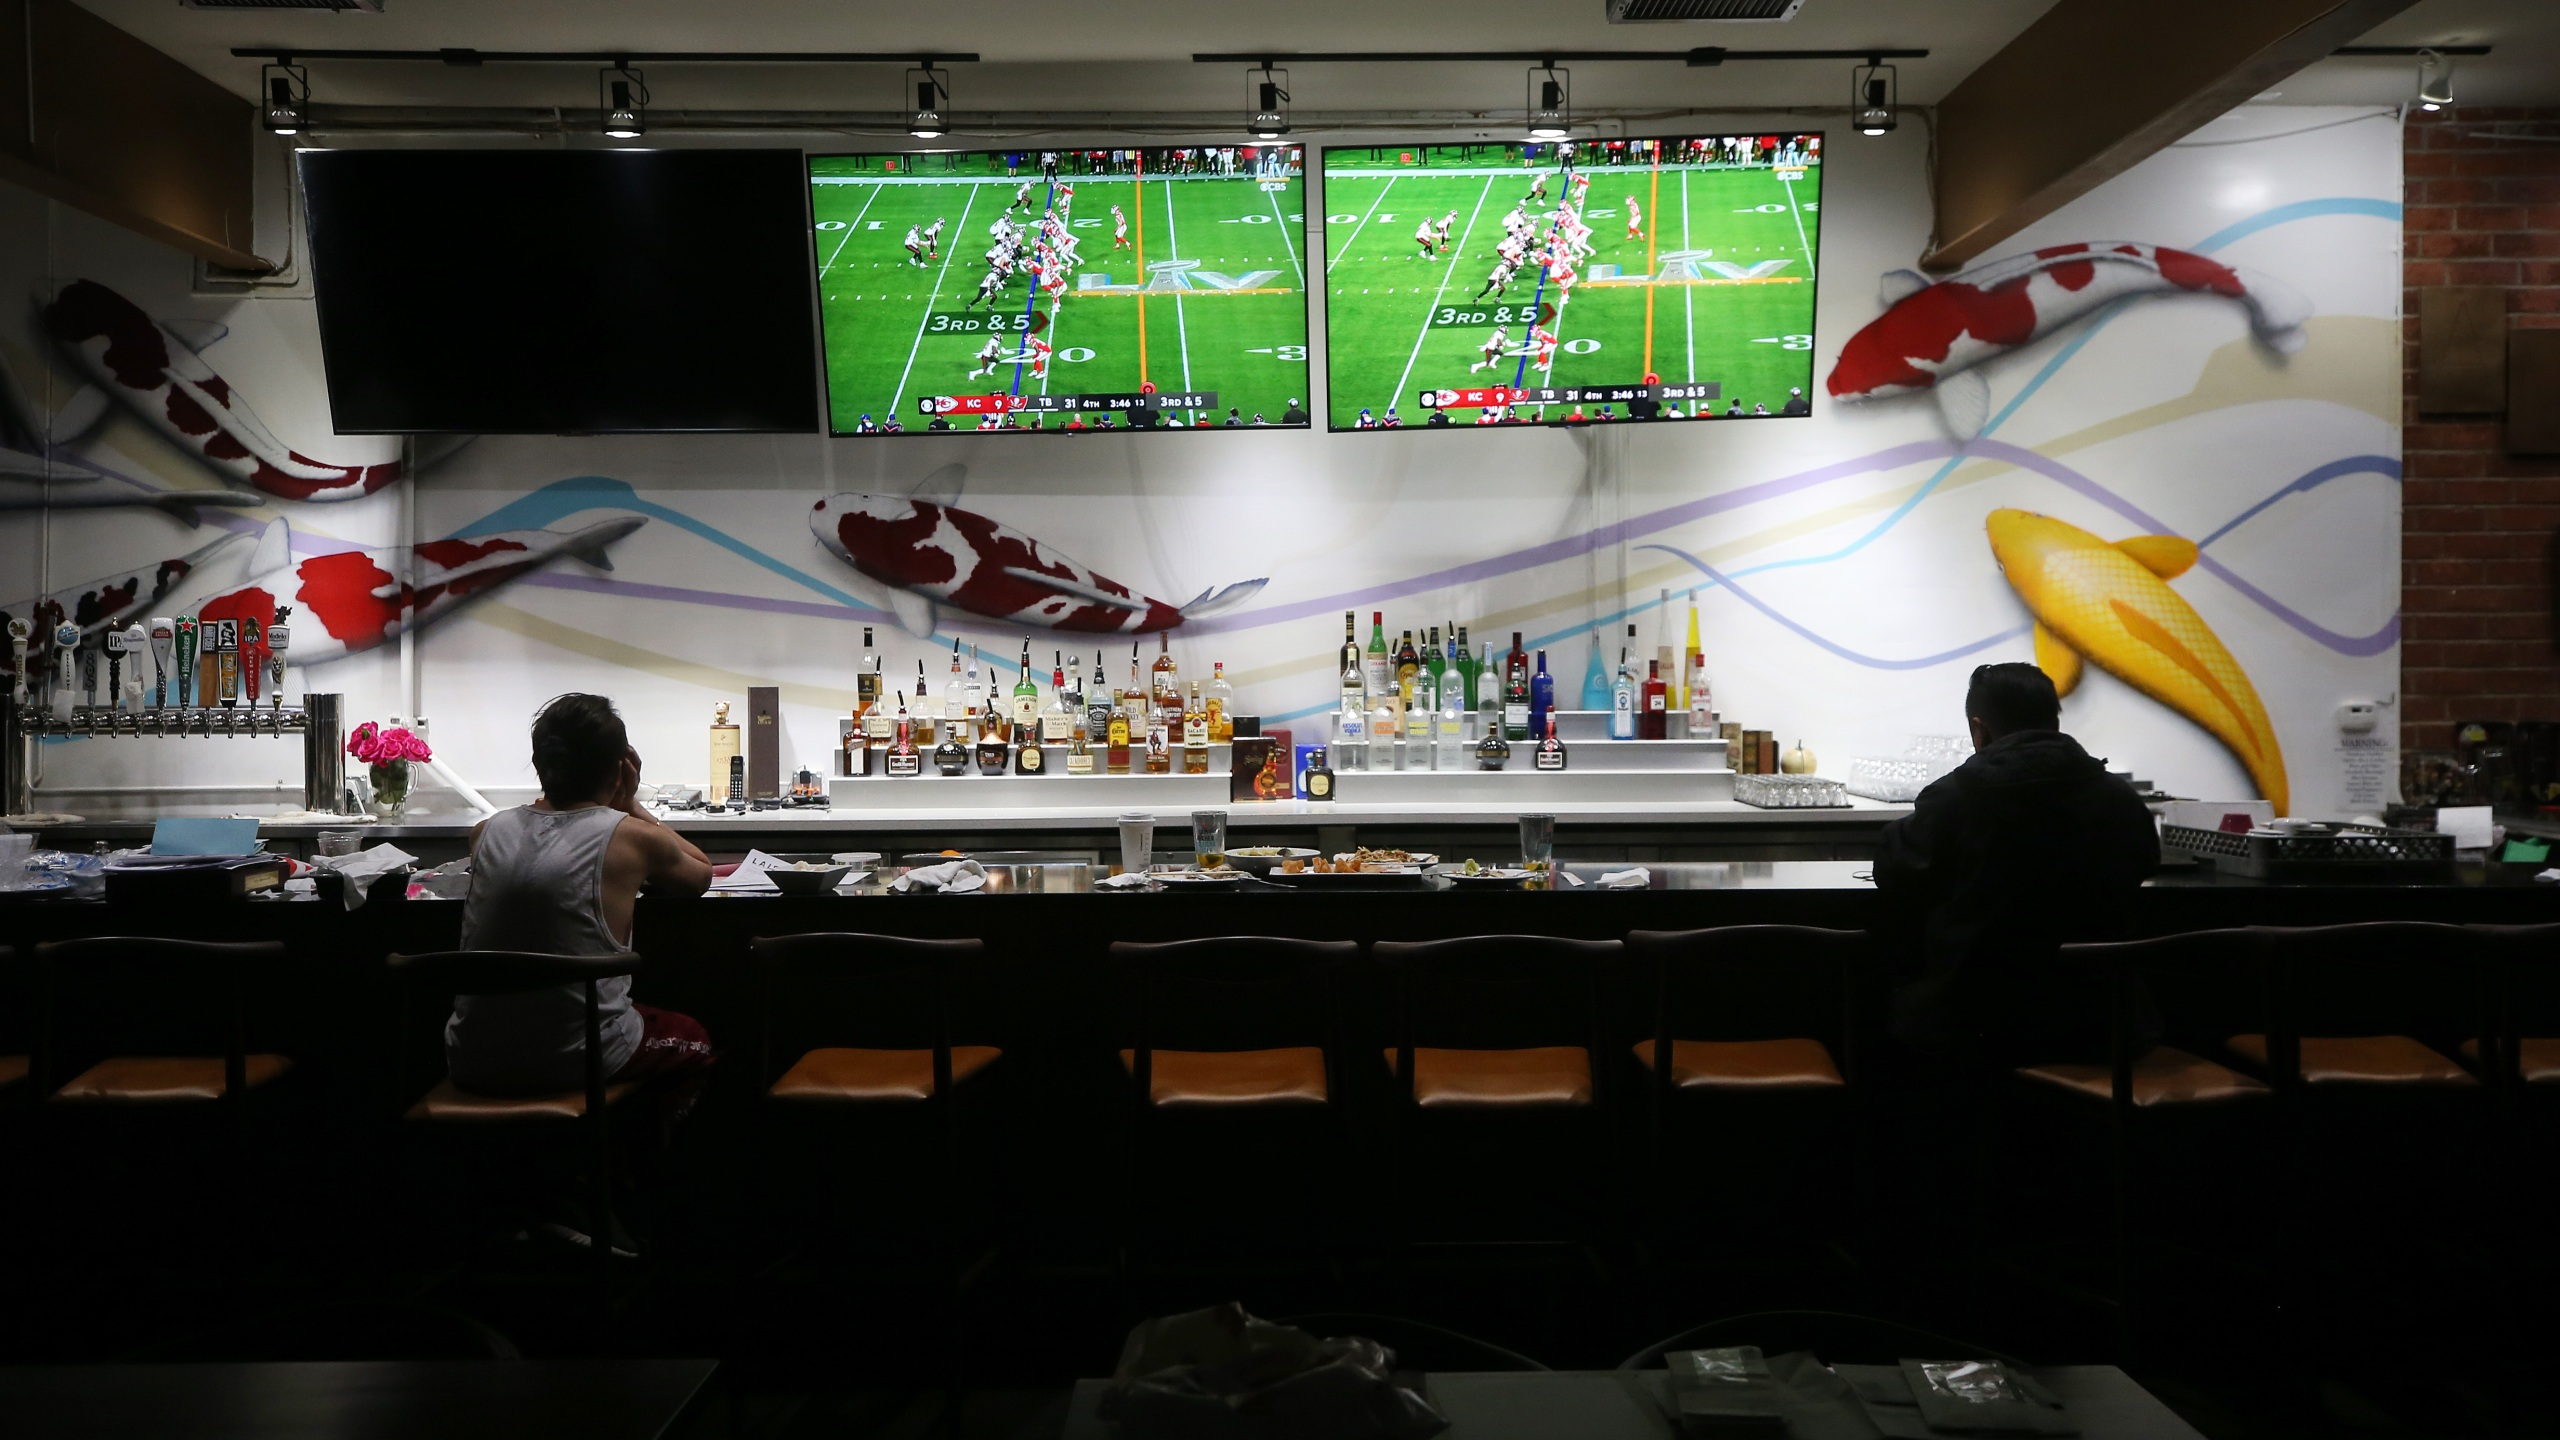 Restaurant workers sit during a break as Super Bowl LV plays on televisions in the shuttered indoor section of a restaurant on Feb. 7, 2021 in Los Angeles.(Mario Tama/Getty Images)